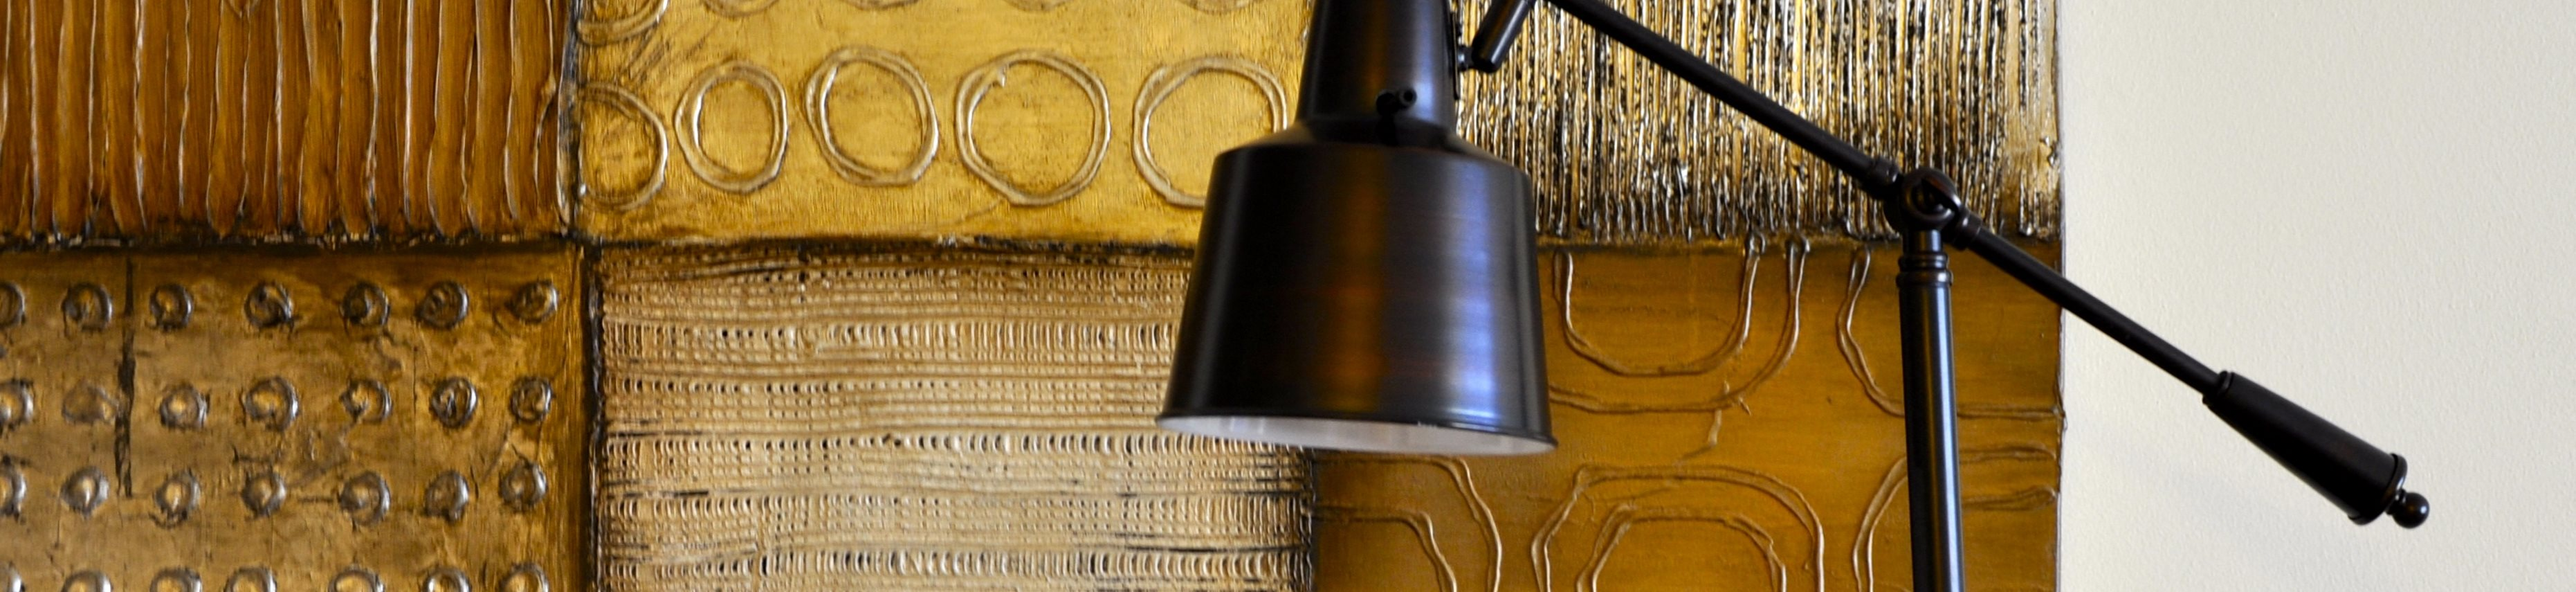 Modern light Fixtures and Textures at 7 Cameron, Massachusetts, 02140